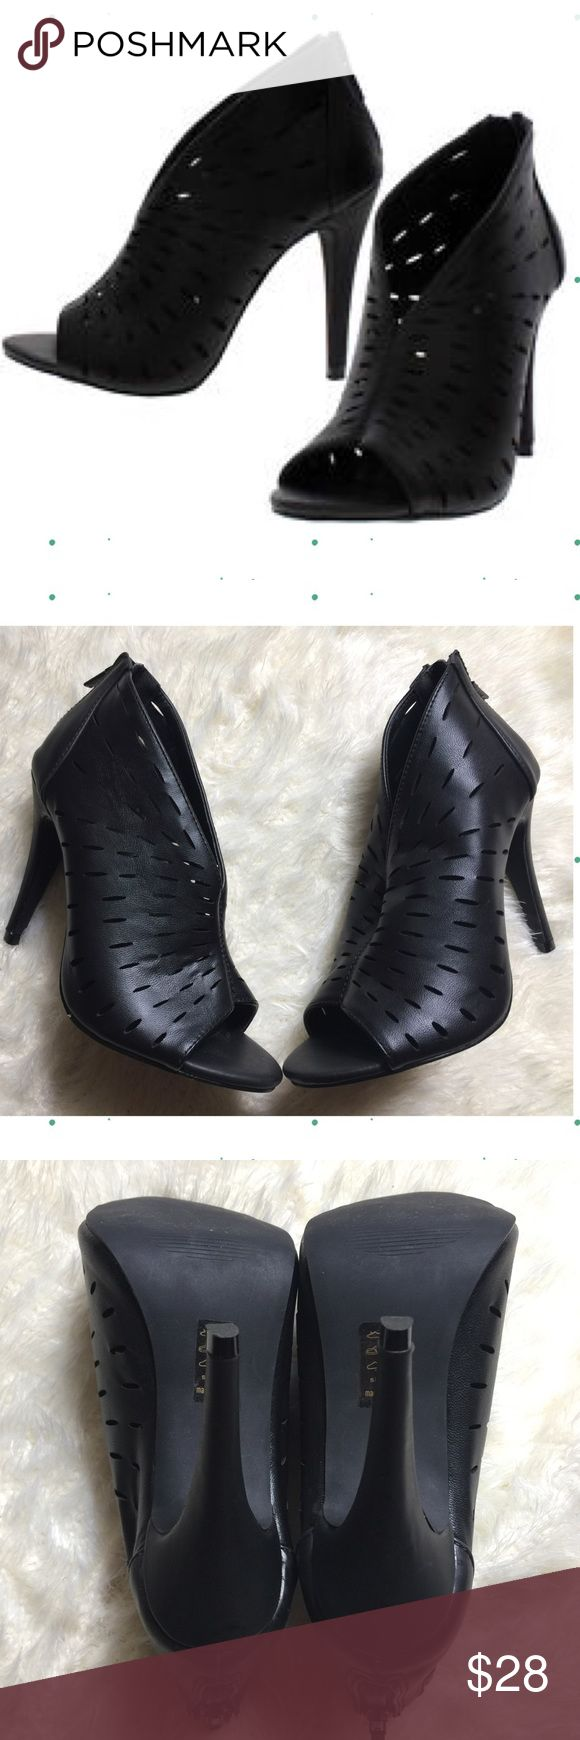 """Perforated Open Toe Bootie Heels MICHAEL ANTONIO Perforated Open Toe Bootie Heels 💕Like new! Only used for a few hours💕Size 6. These bootie heels include a faux leather upper in a perforated design, low cut, open toe, back zipper closure, smooth lining and cushioned insoles. Approximately 4 inch heels. Original box not included. ❌Trades ❌Holds ❌ Lowball Offers ✅ Use the """"ADD TO BUNDLE"""" link to get 15% off discount on 2+ items Michael Antonio Shoes Heels"""